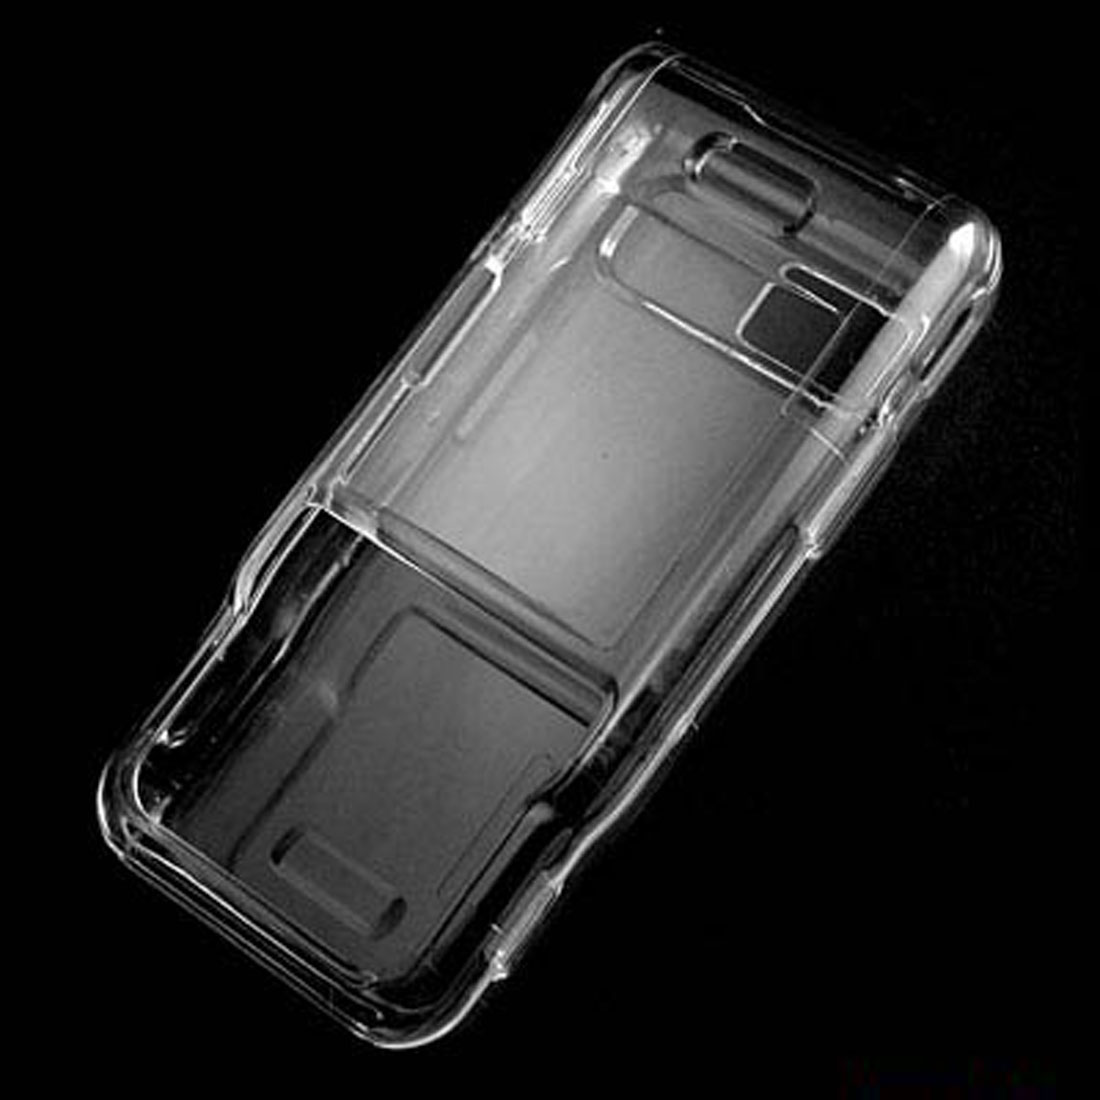 Clear Plastic Case for Nokia 3230